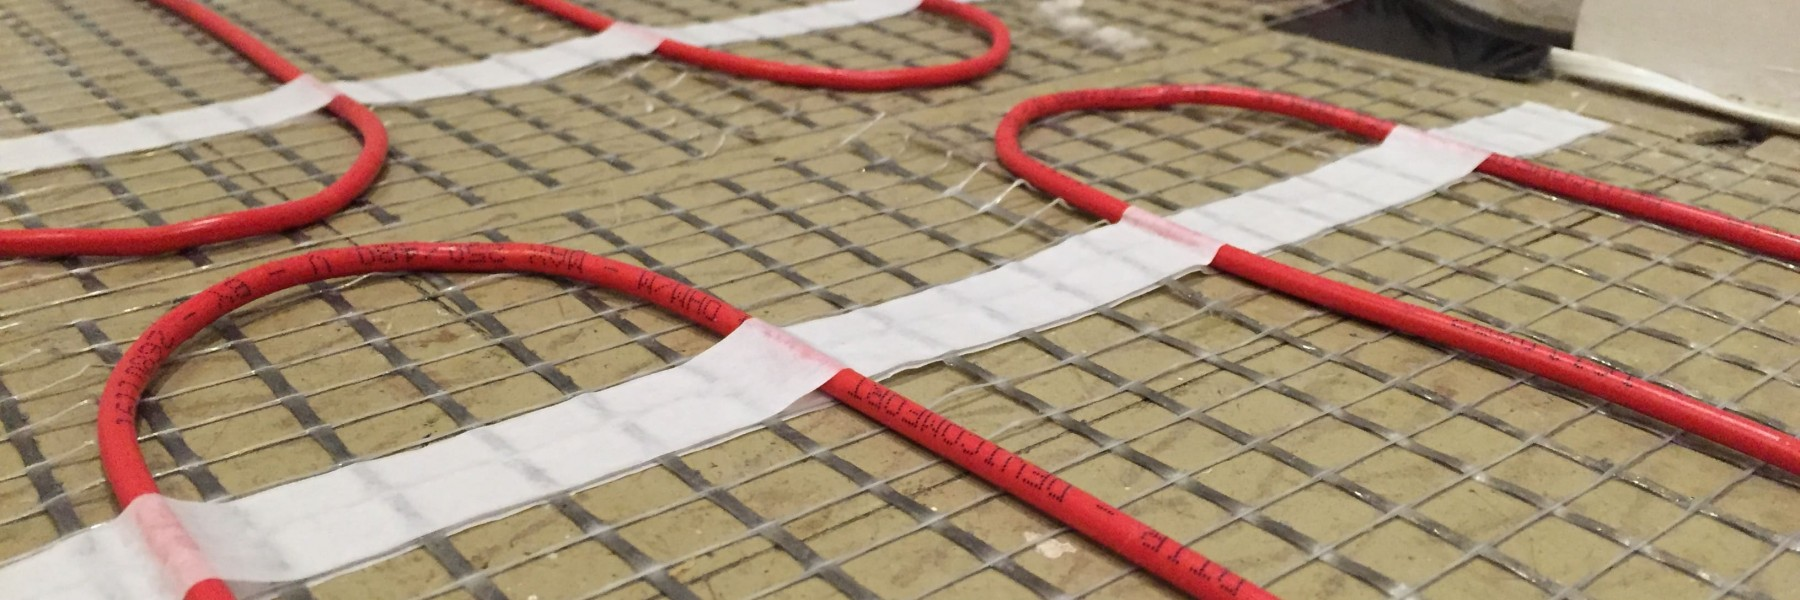 underfloor heating cable installation